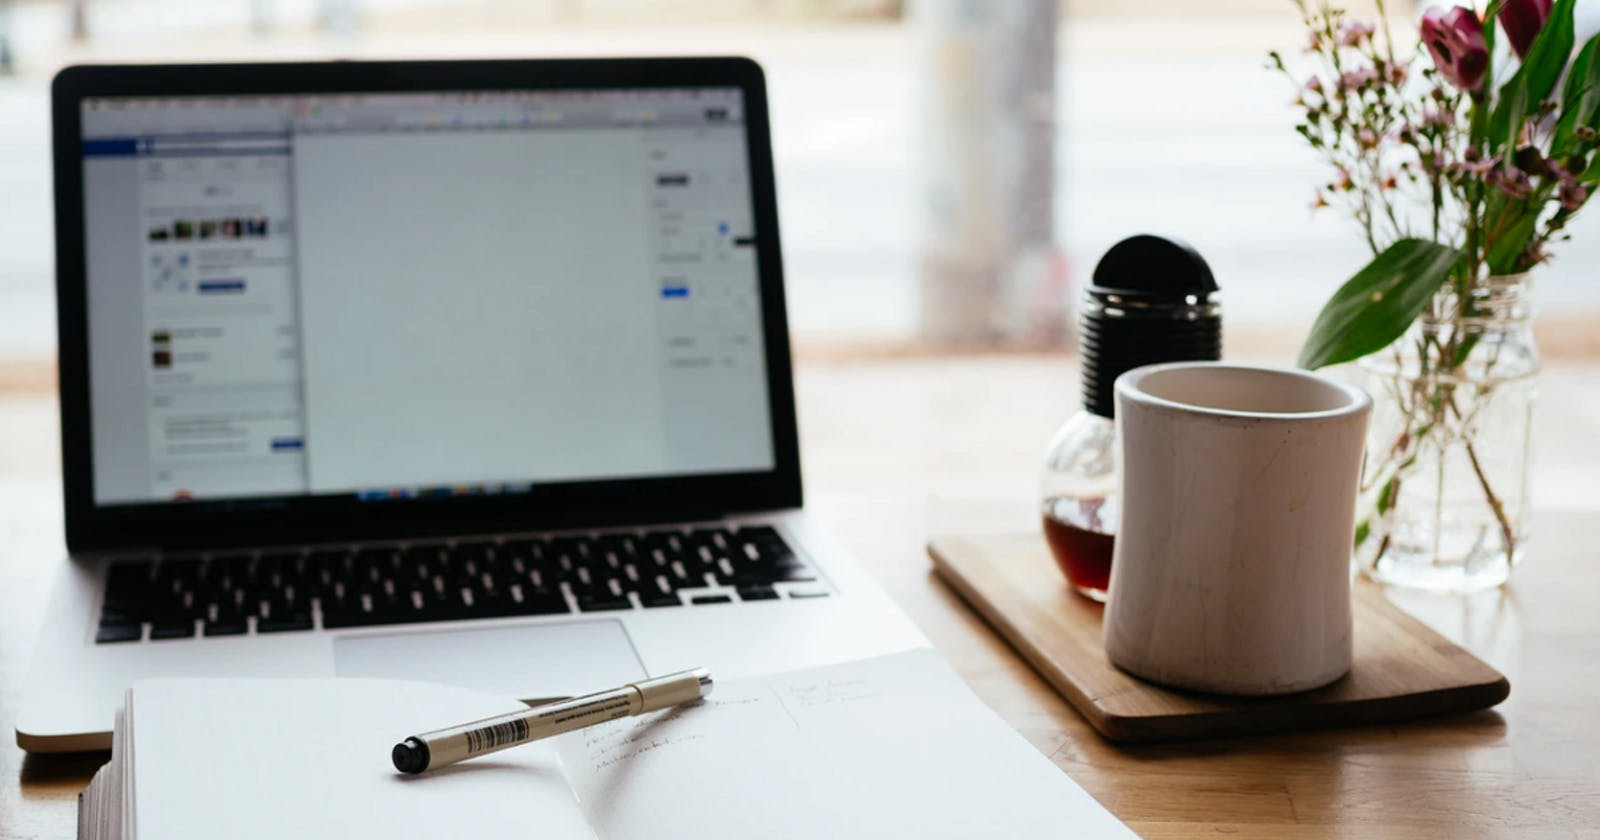 How I became a technical writer